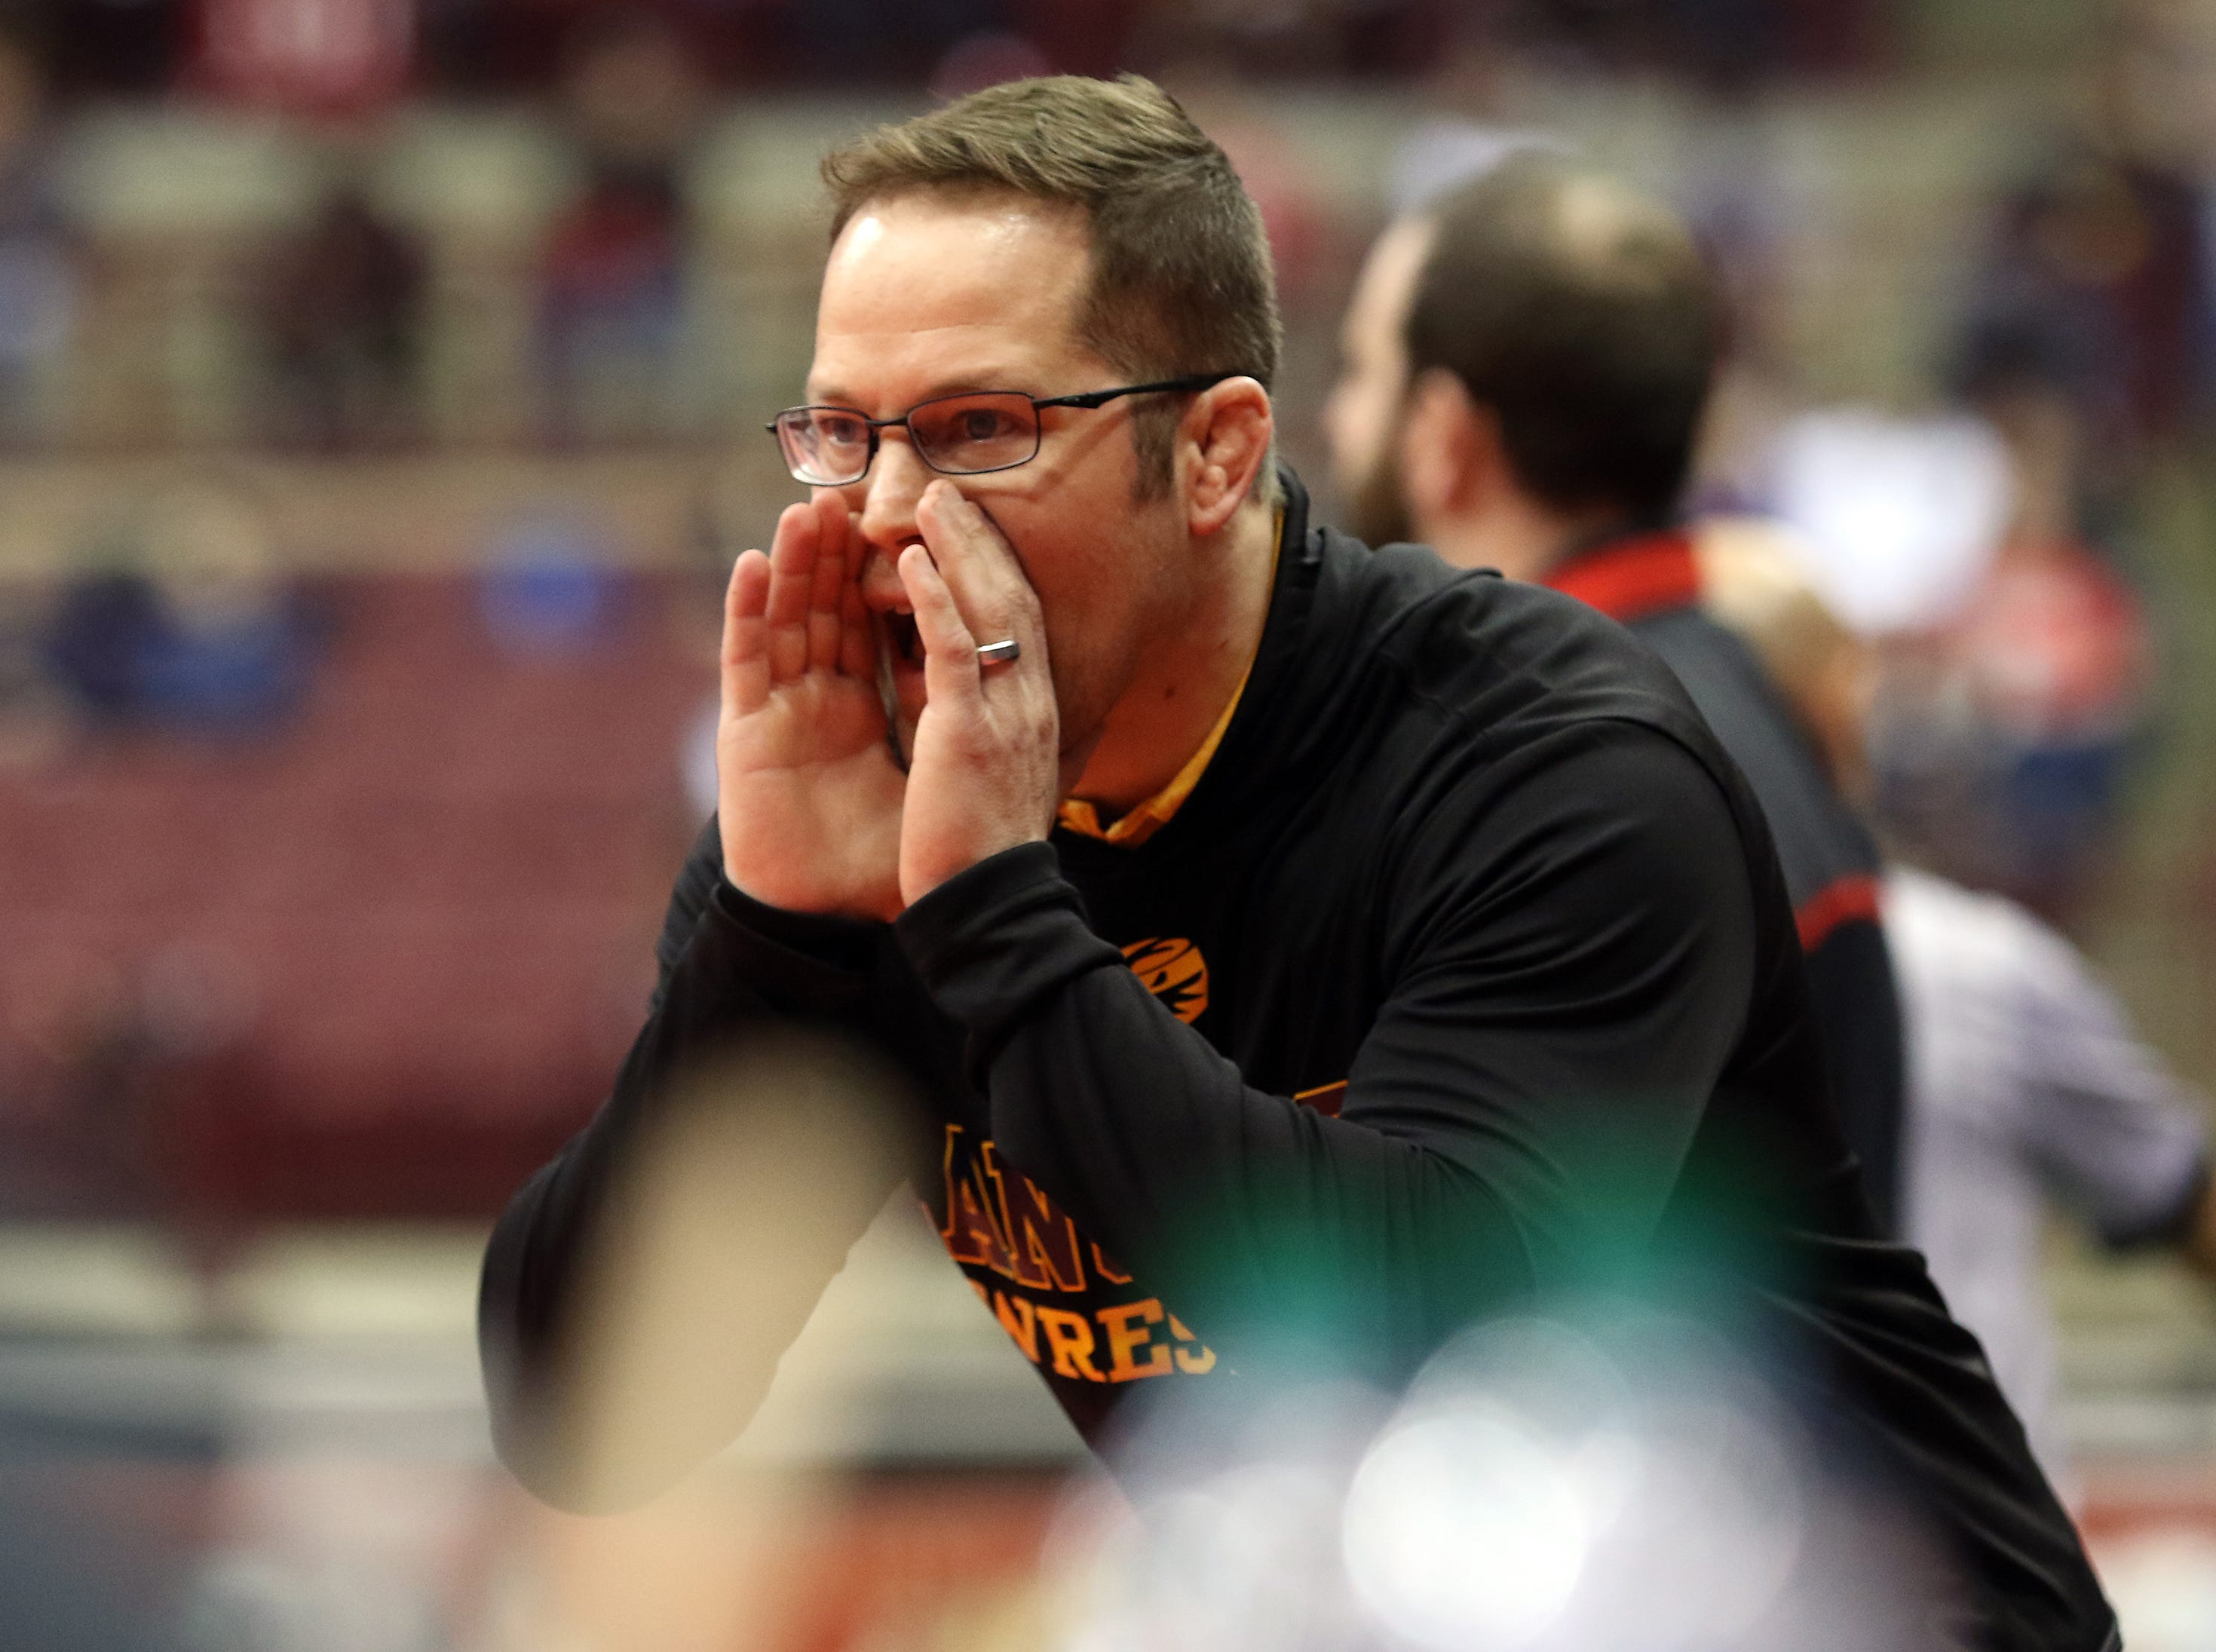 A Lancaster coach shouts support to the Golden Gale's Aiden Agin.